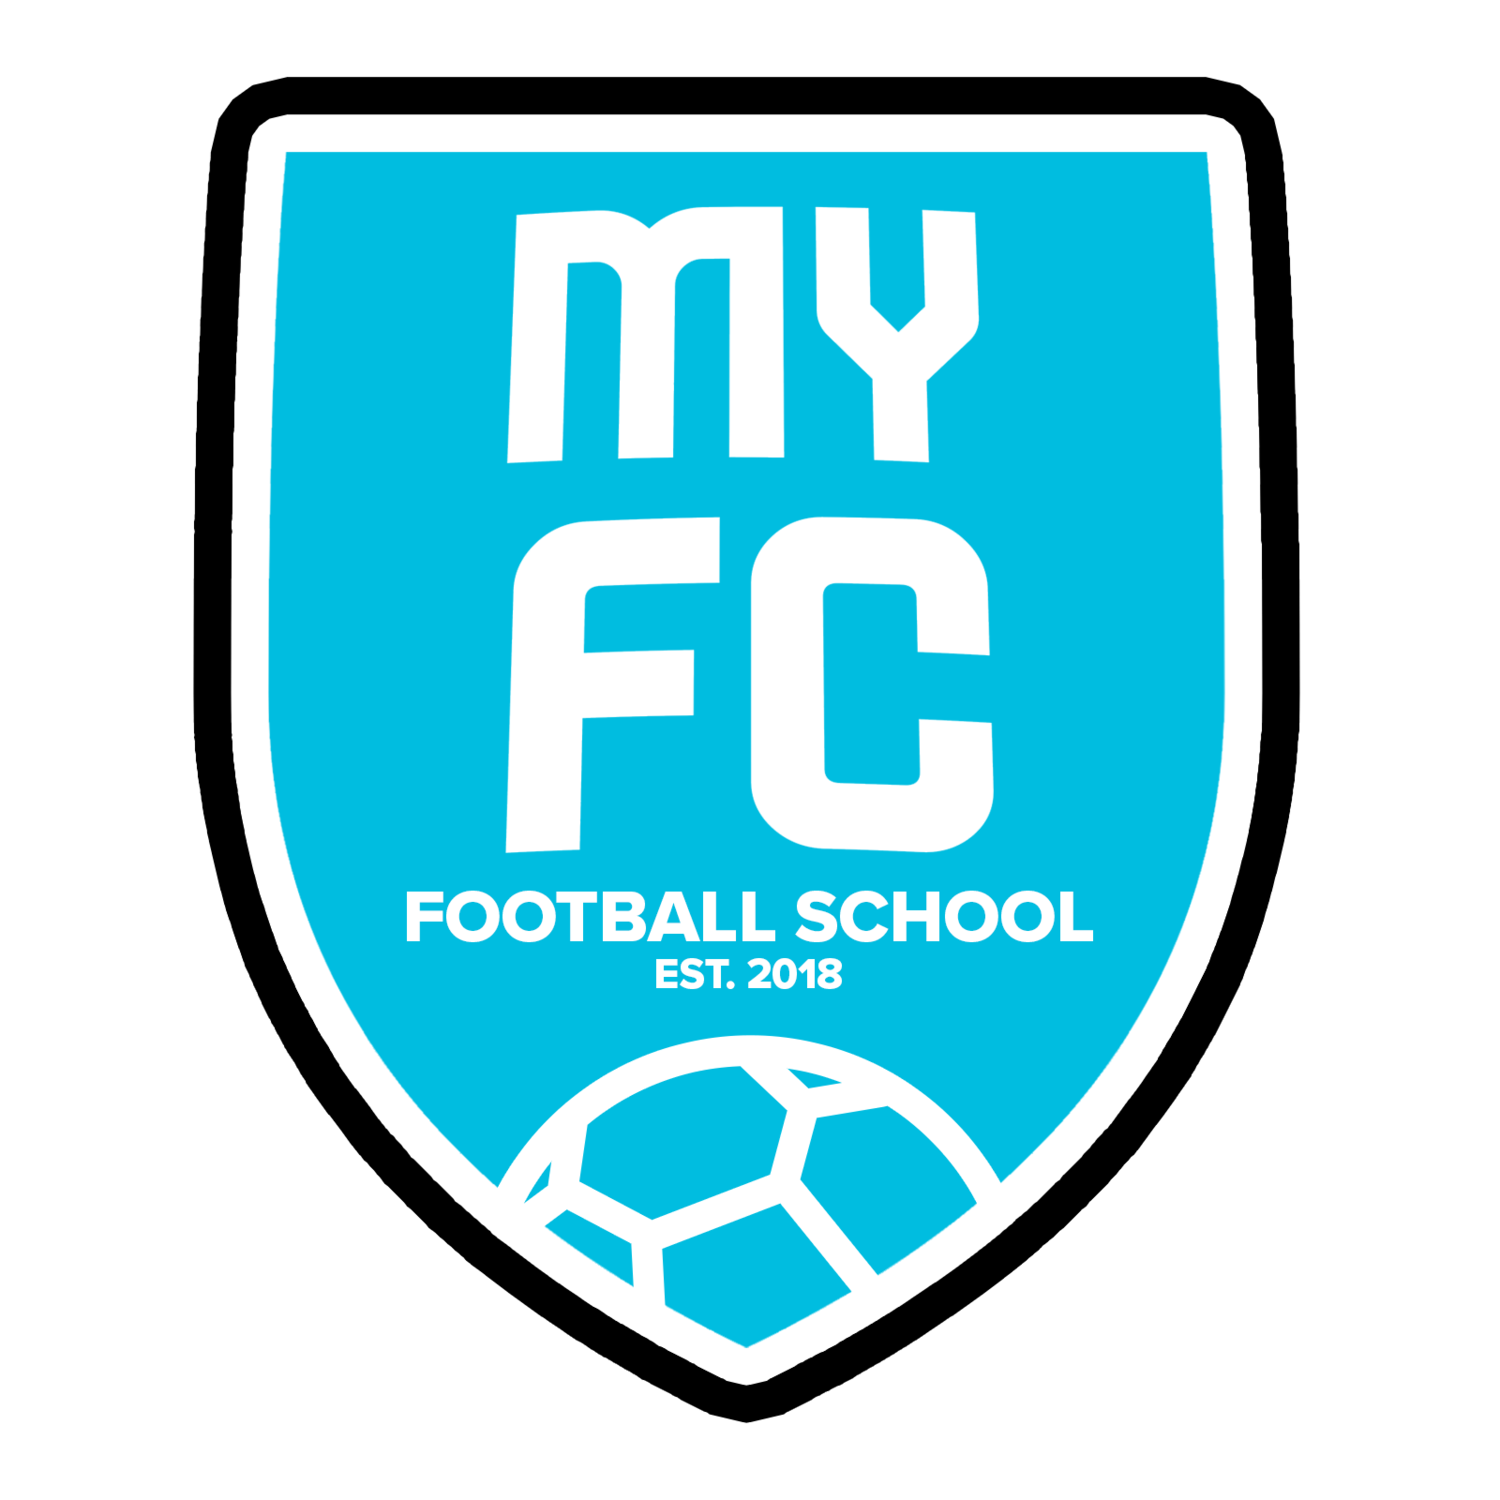 MY F.C. Football School